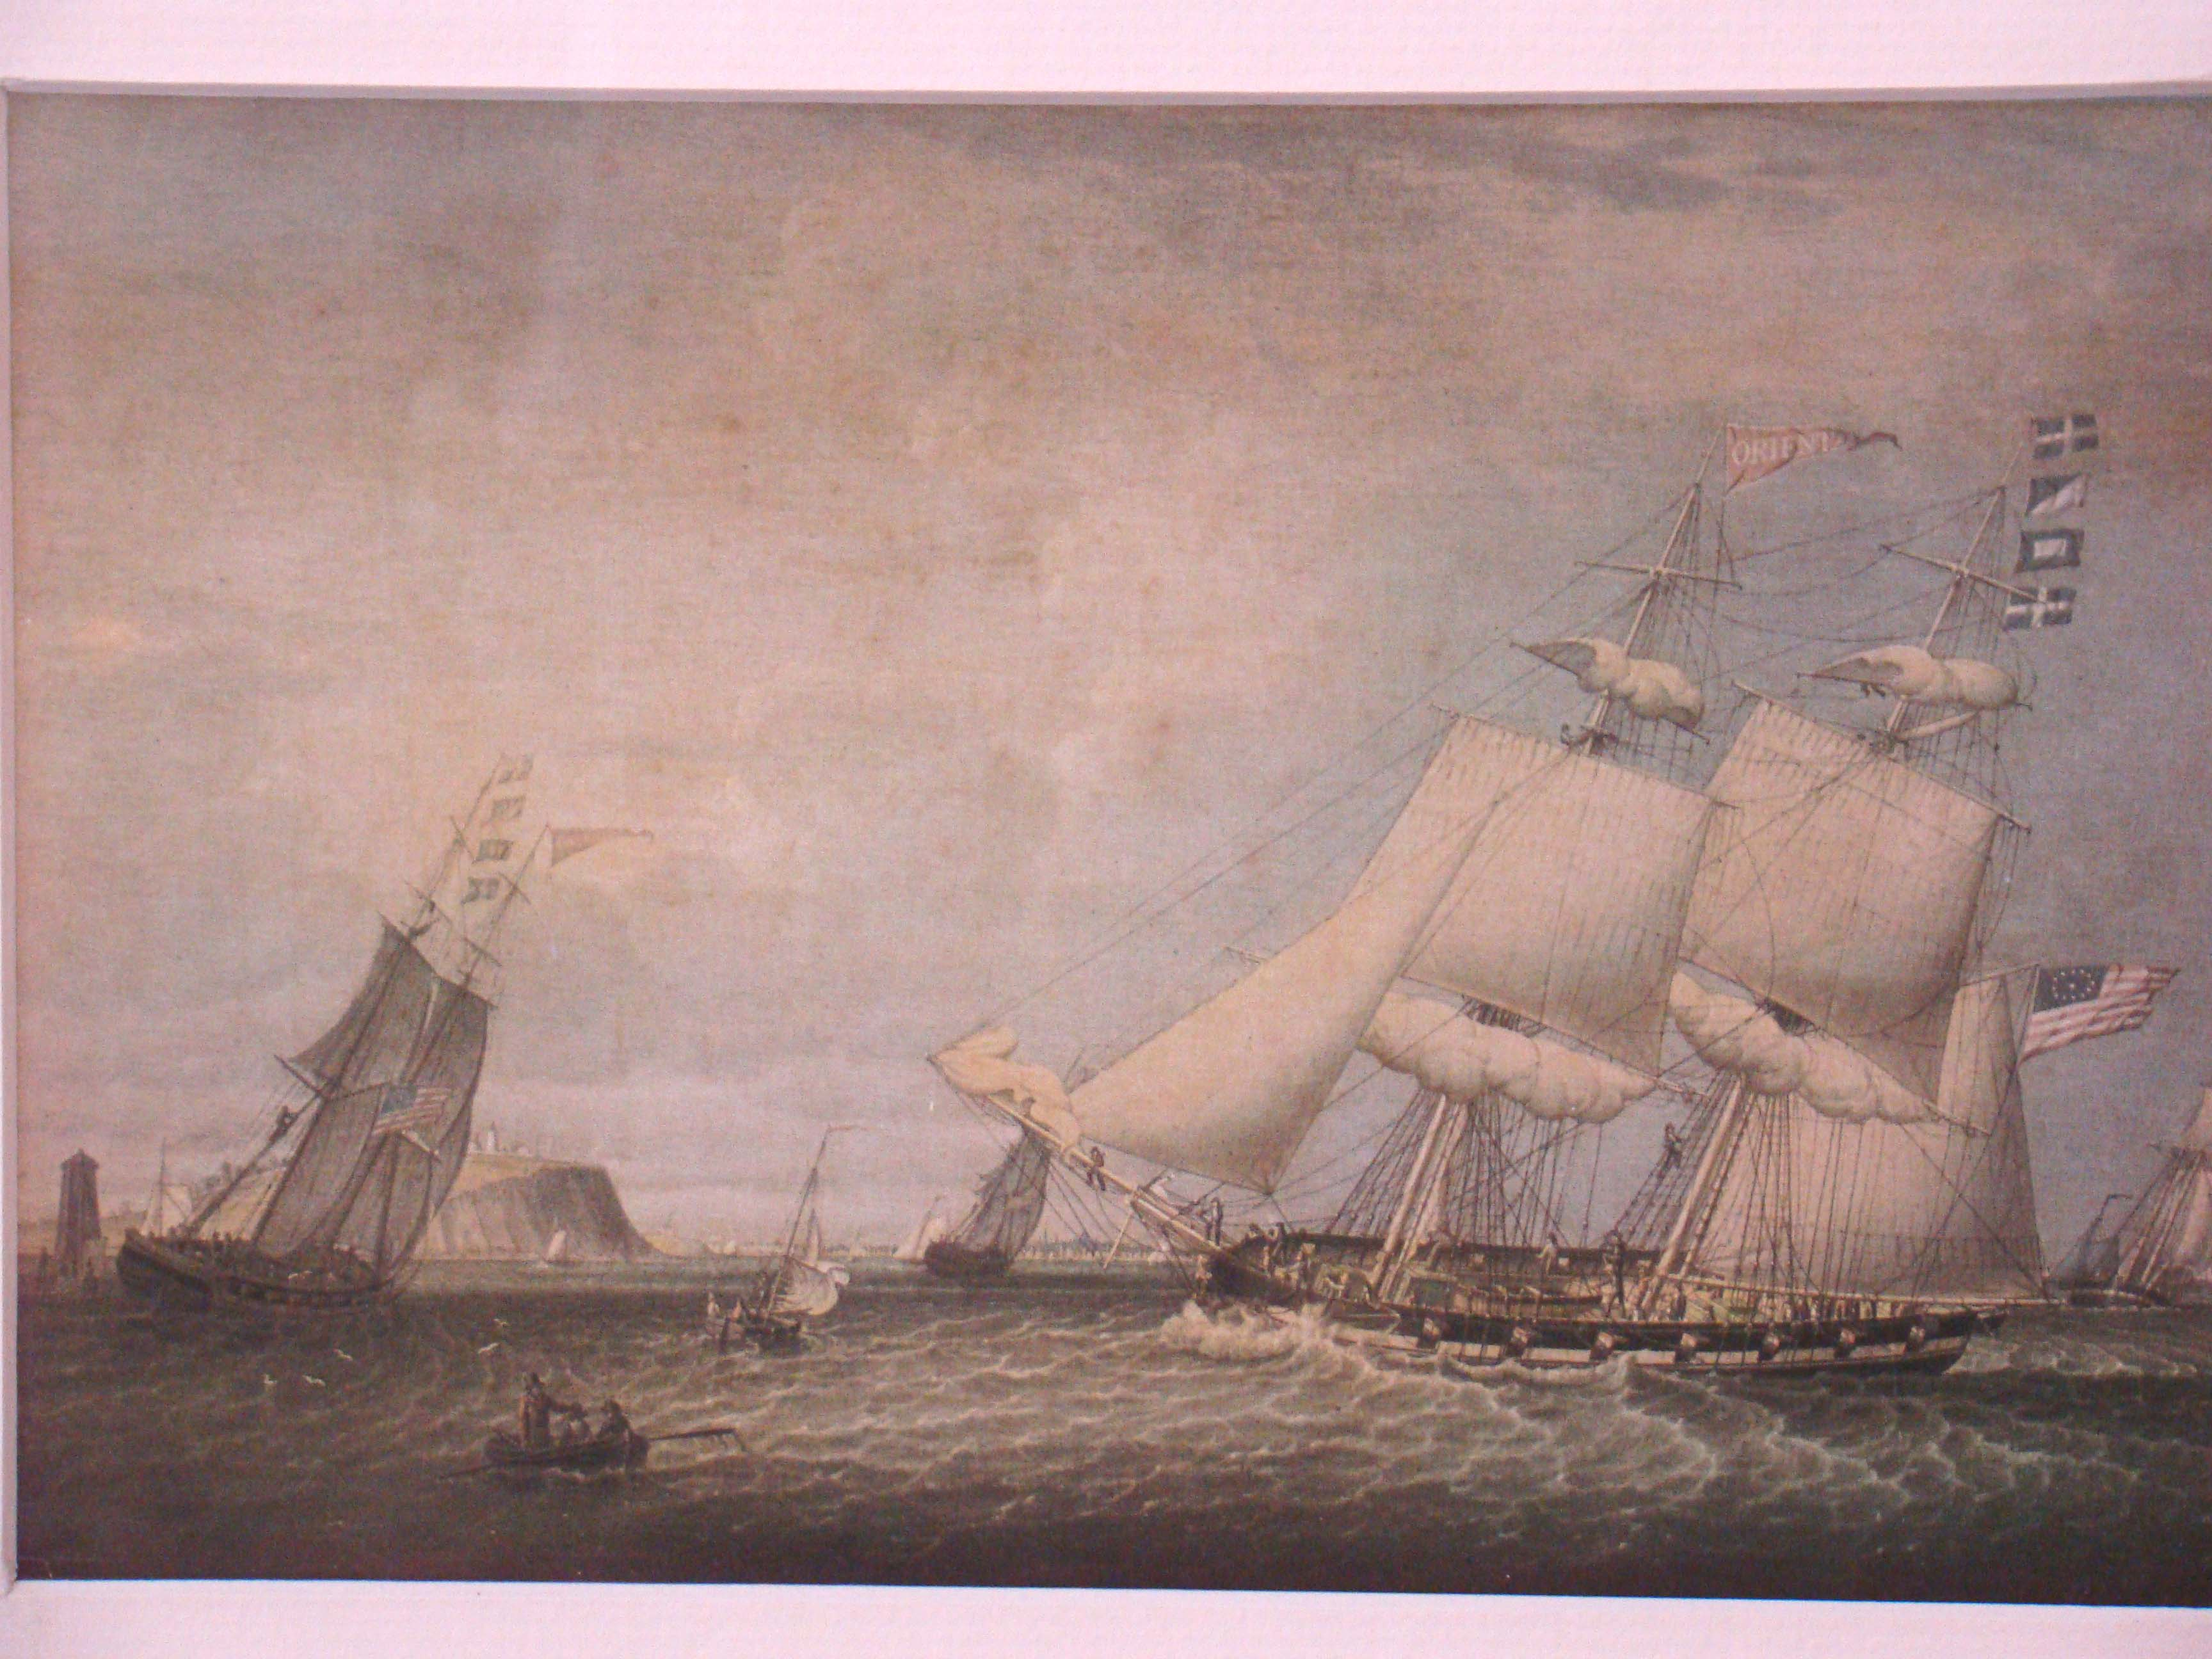 click to view larger image of An attractive vintage print of the Brig